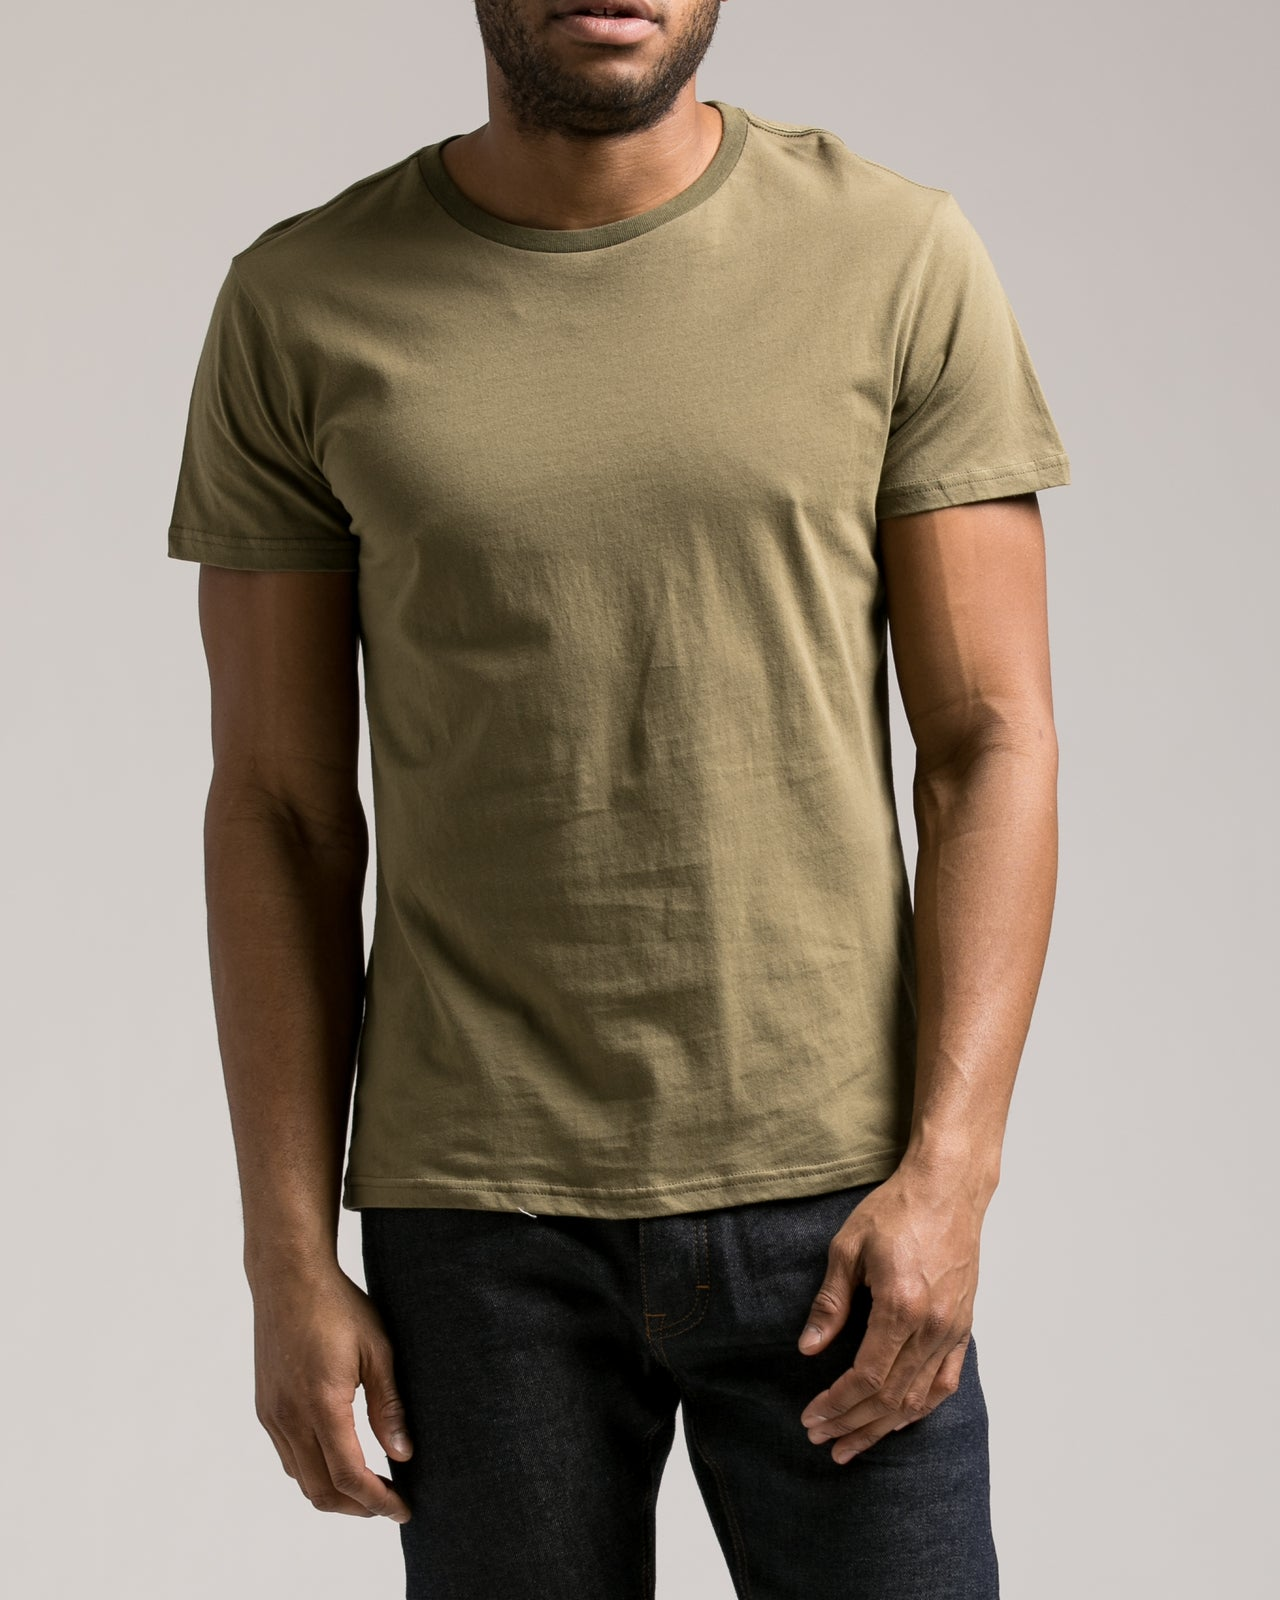 The Daily Tee 2.0 - Color: Olive | Green